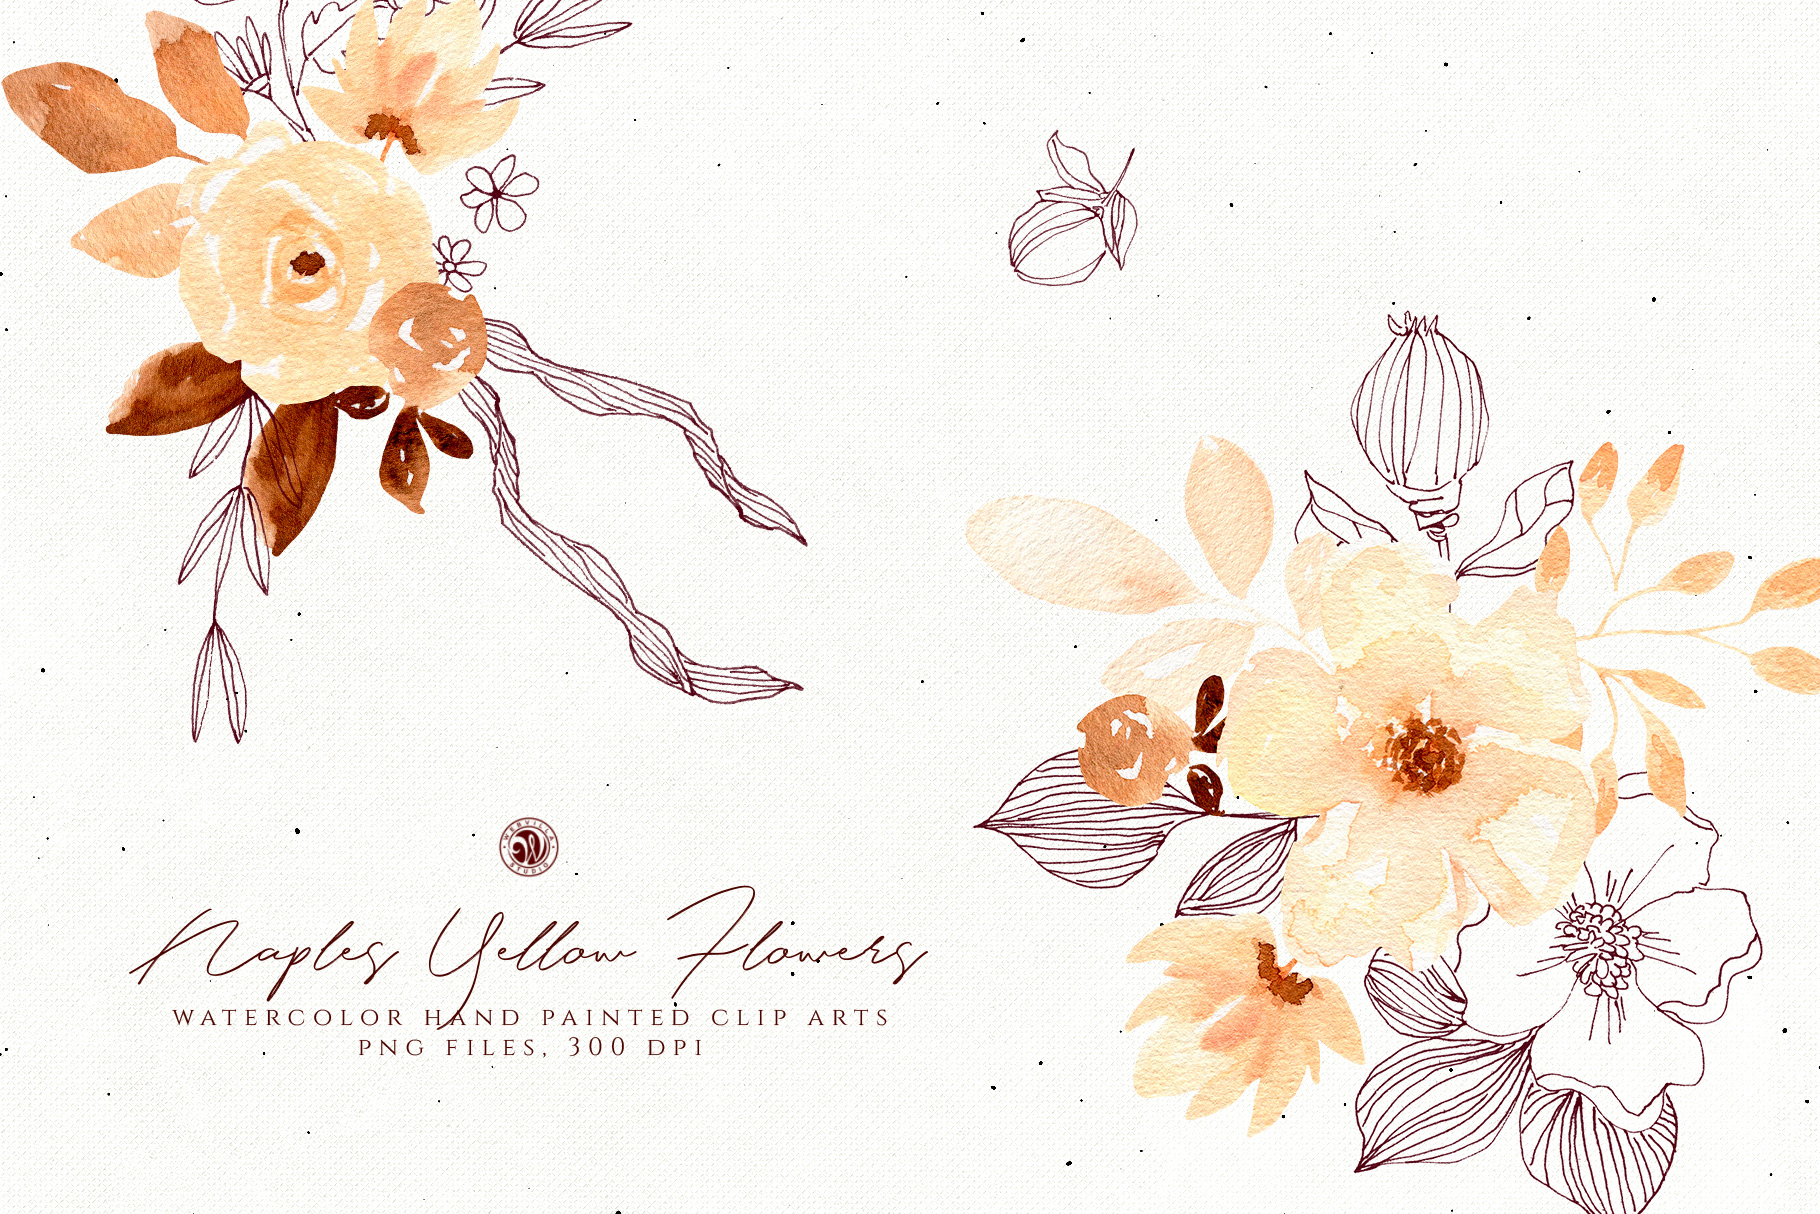 Download Free Naples Yellow Flowers Graphic By Webvilla Creative Fabrica for Cricut Explore, Silhouette and other cutting machines.